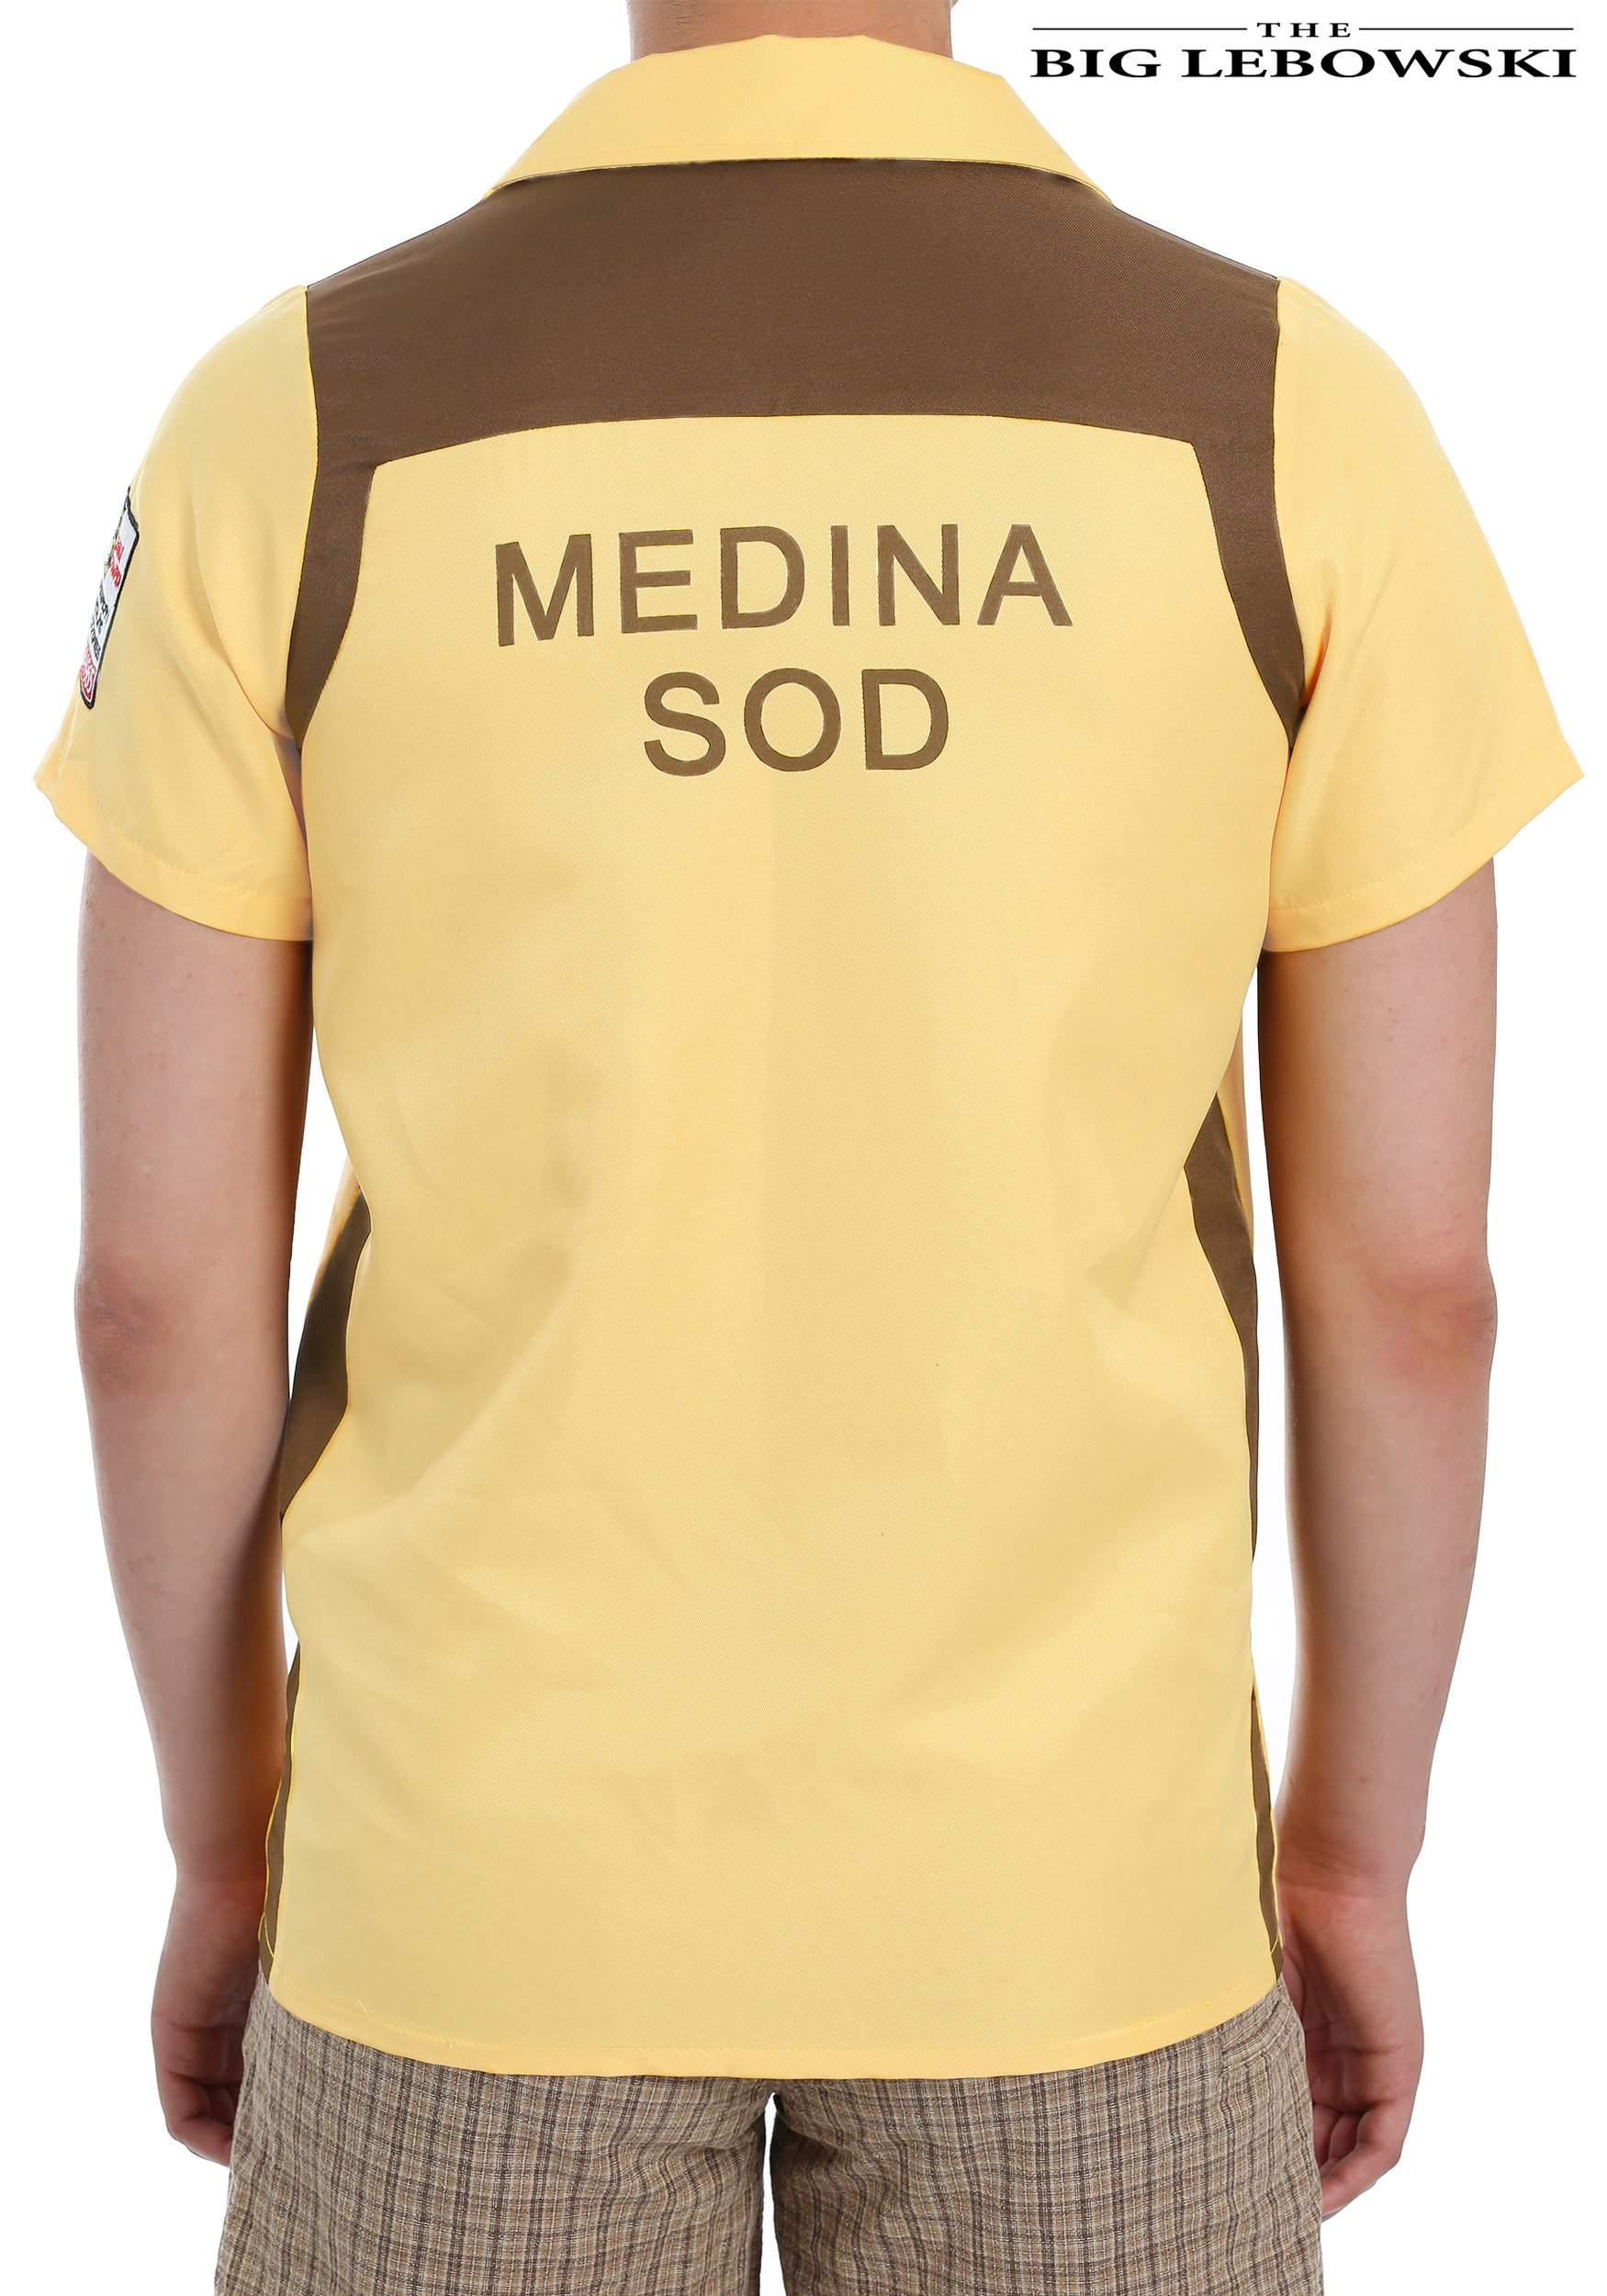 The Big Lebowski Medina Sod Bowling Shirt For Men